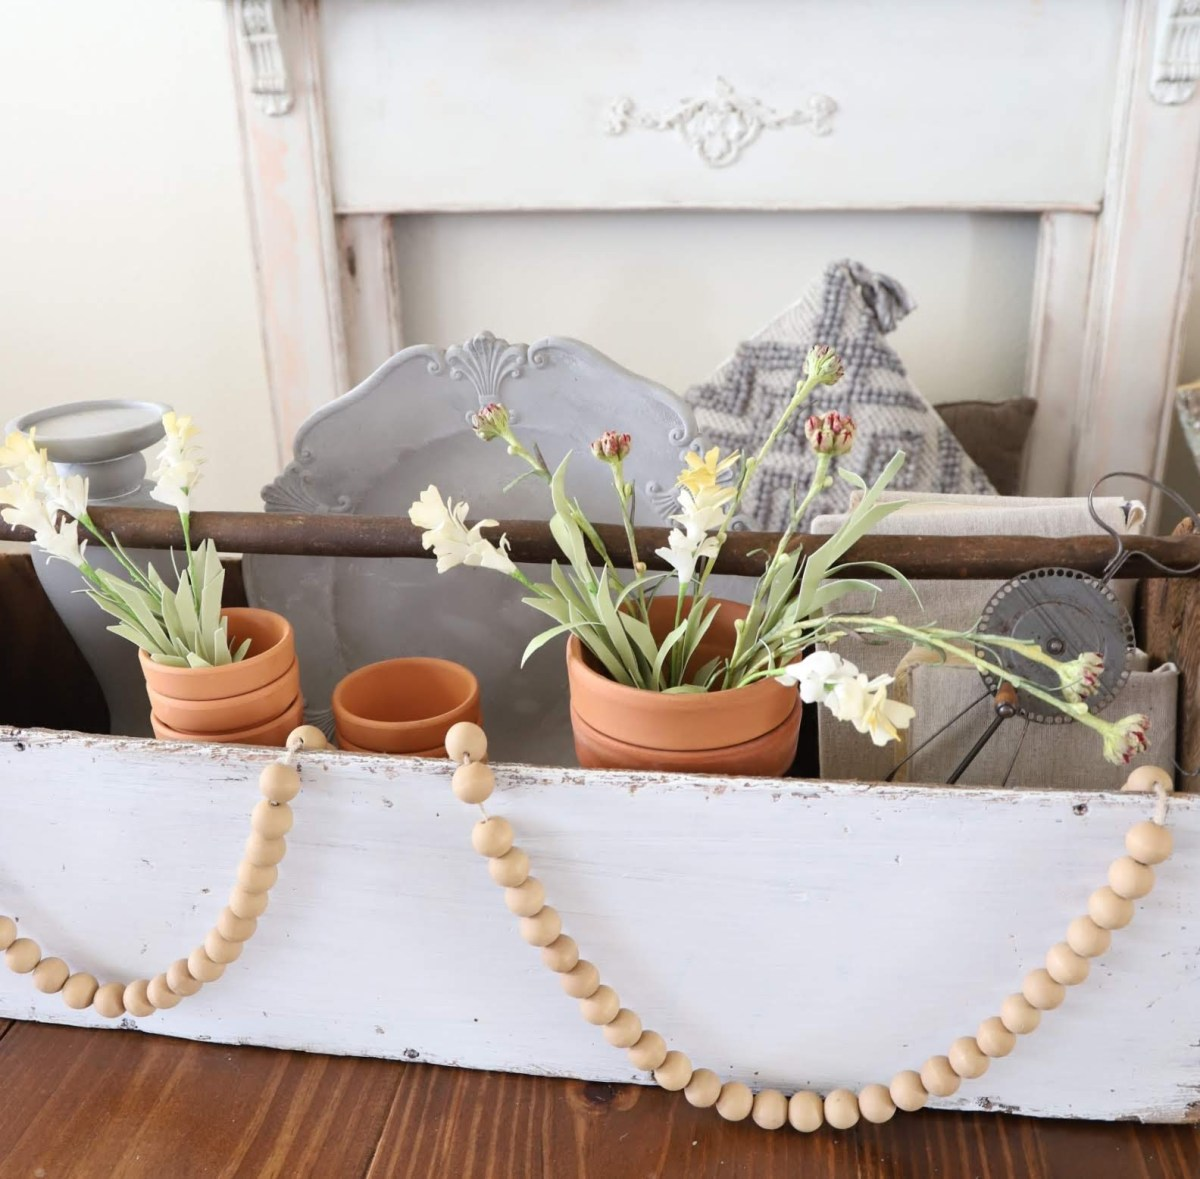 antique mantel, spring display in an old toolbox. terracotta pots